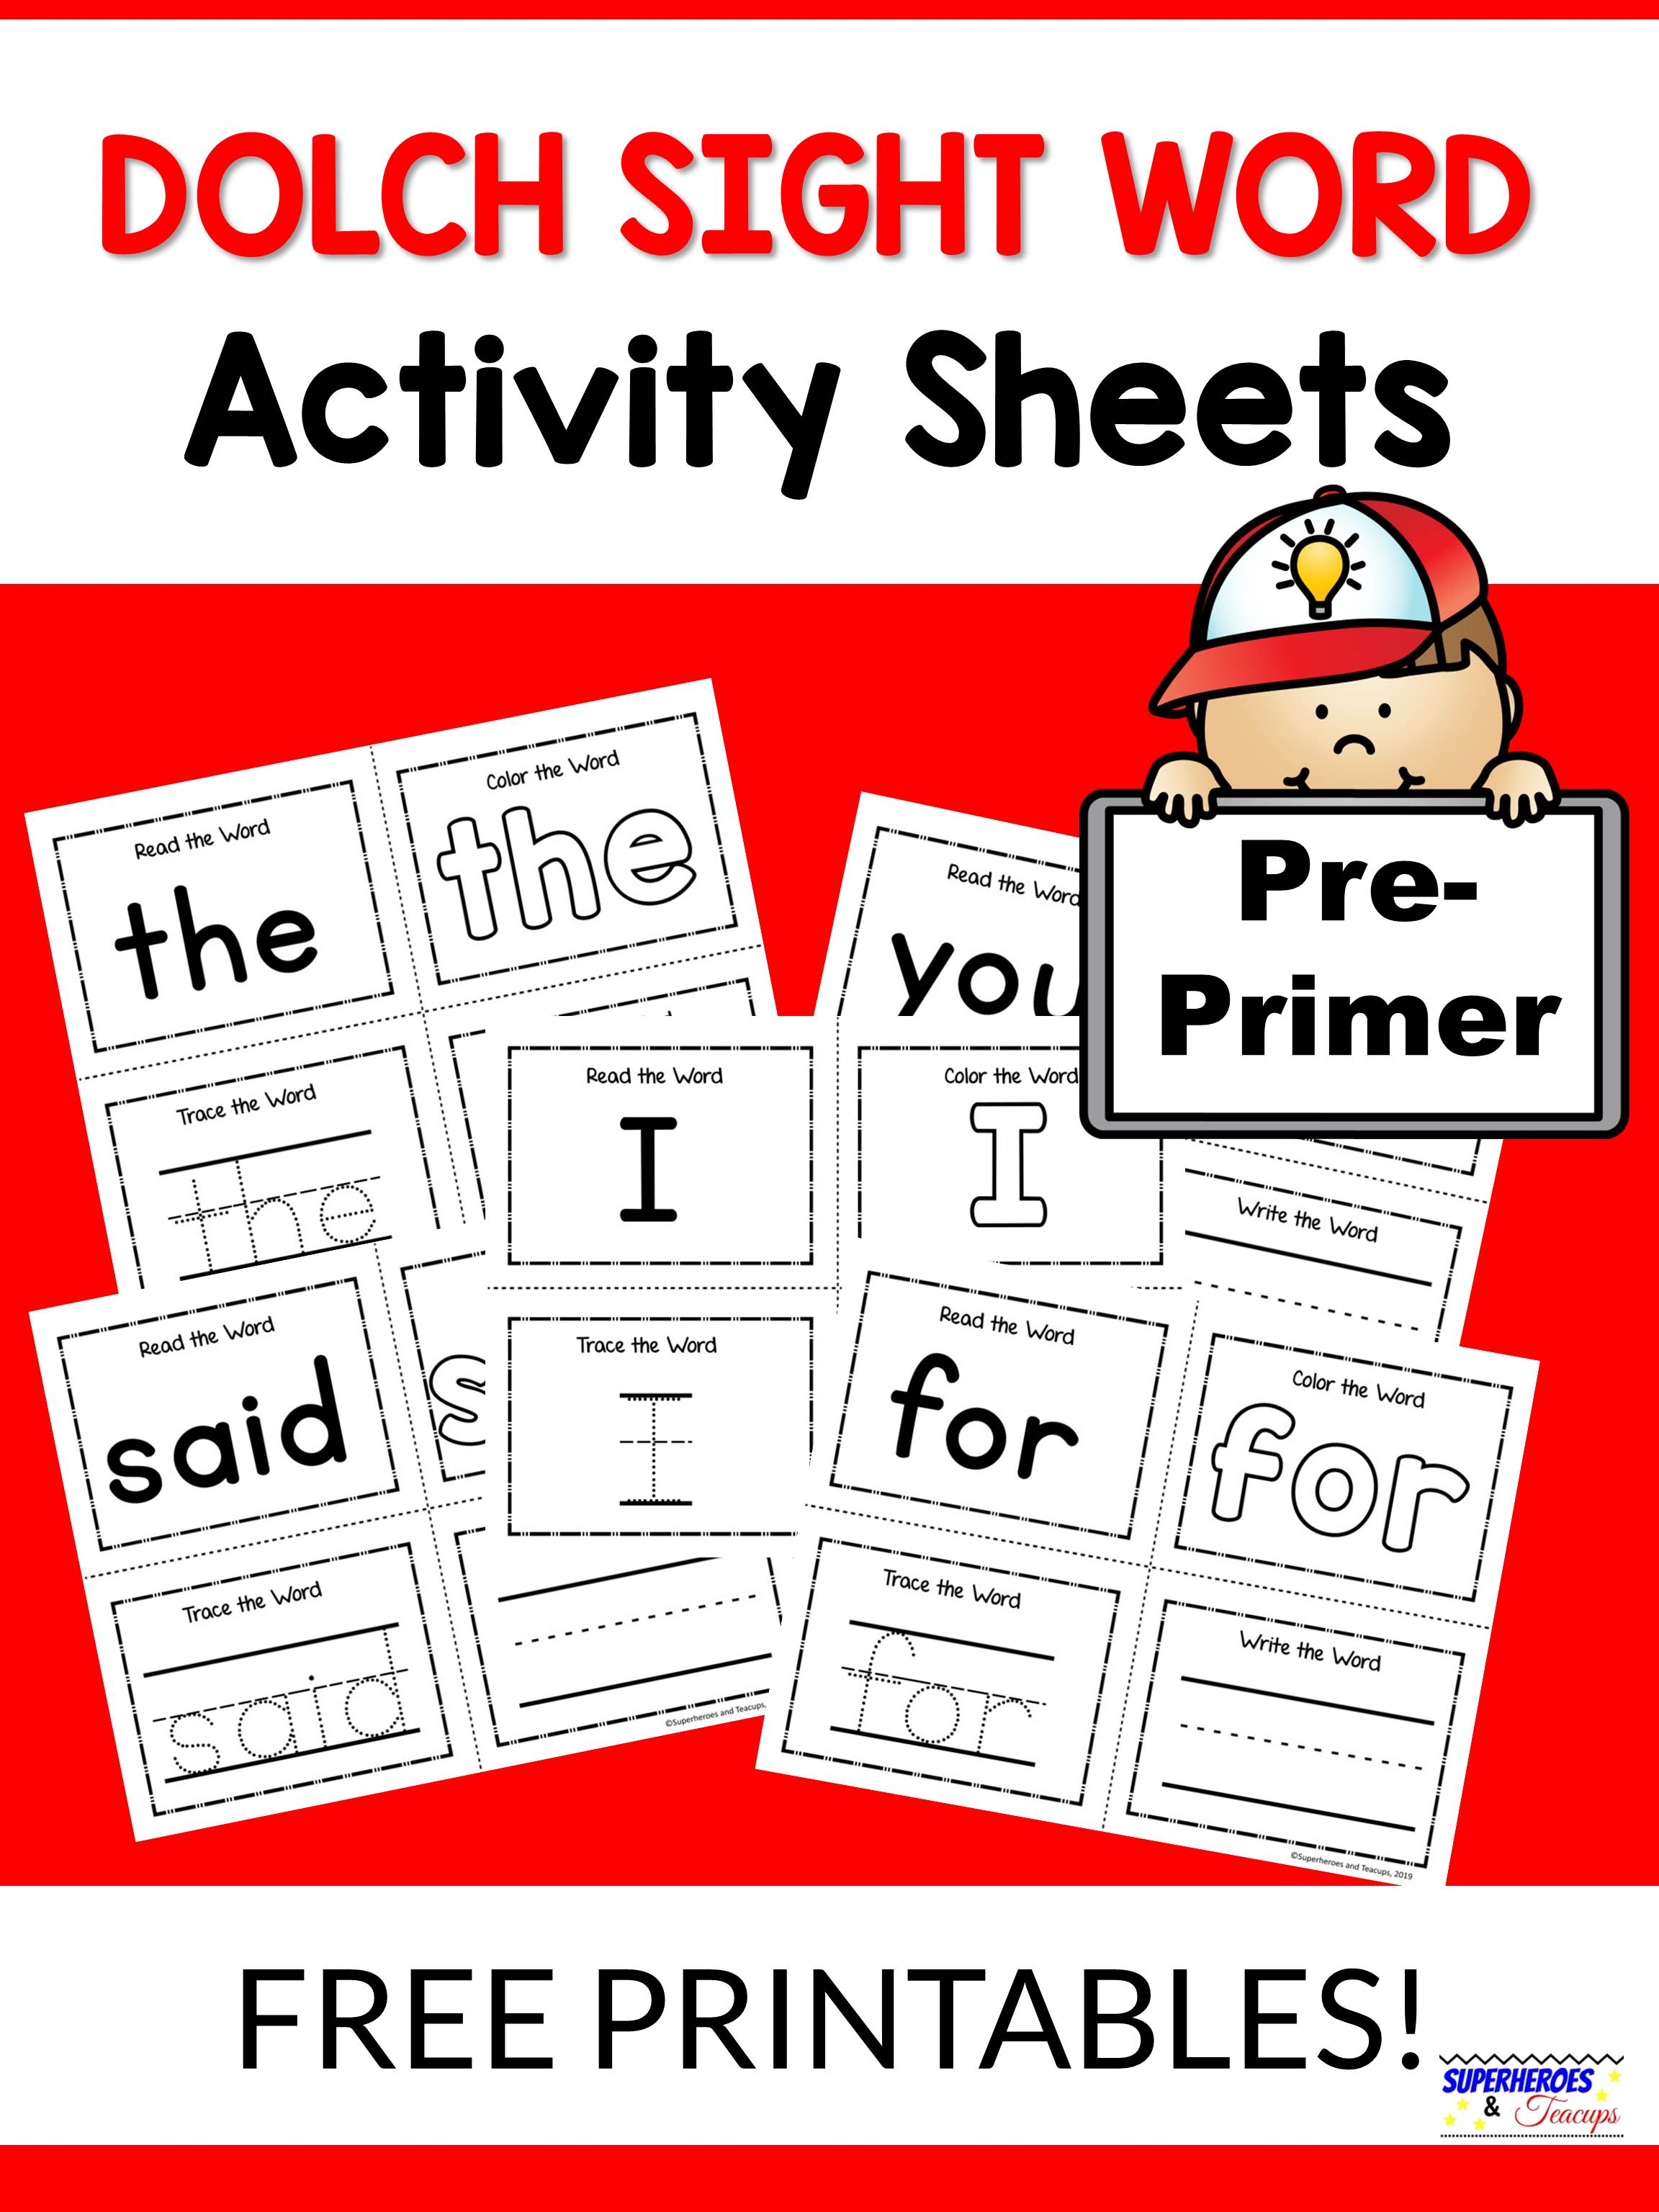 Pre Primer Dolch Sight Word Activity Sheets